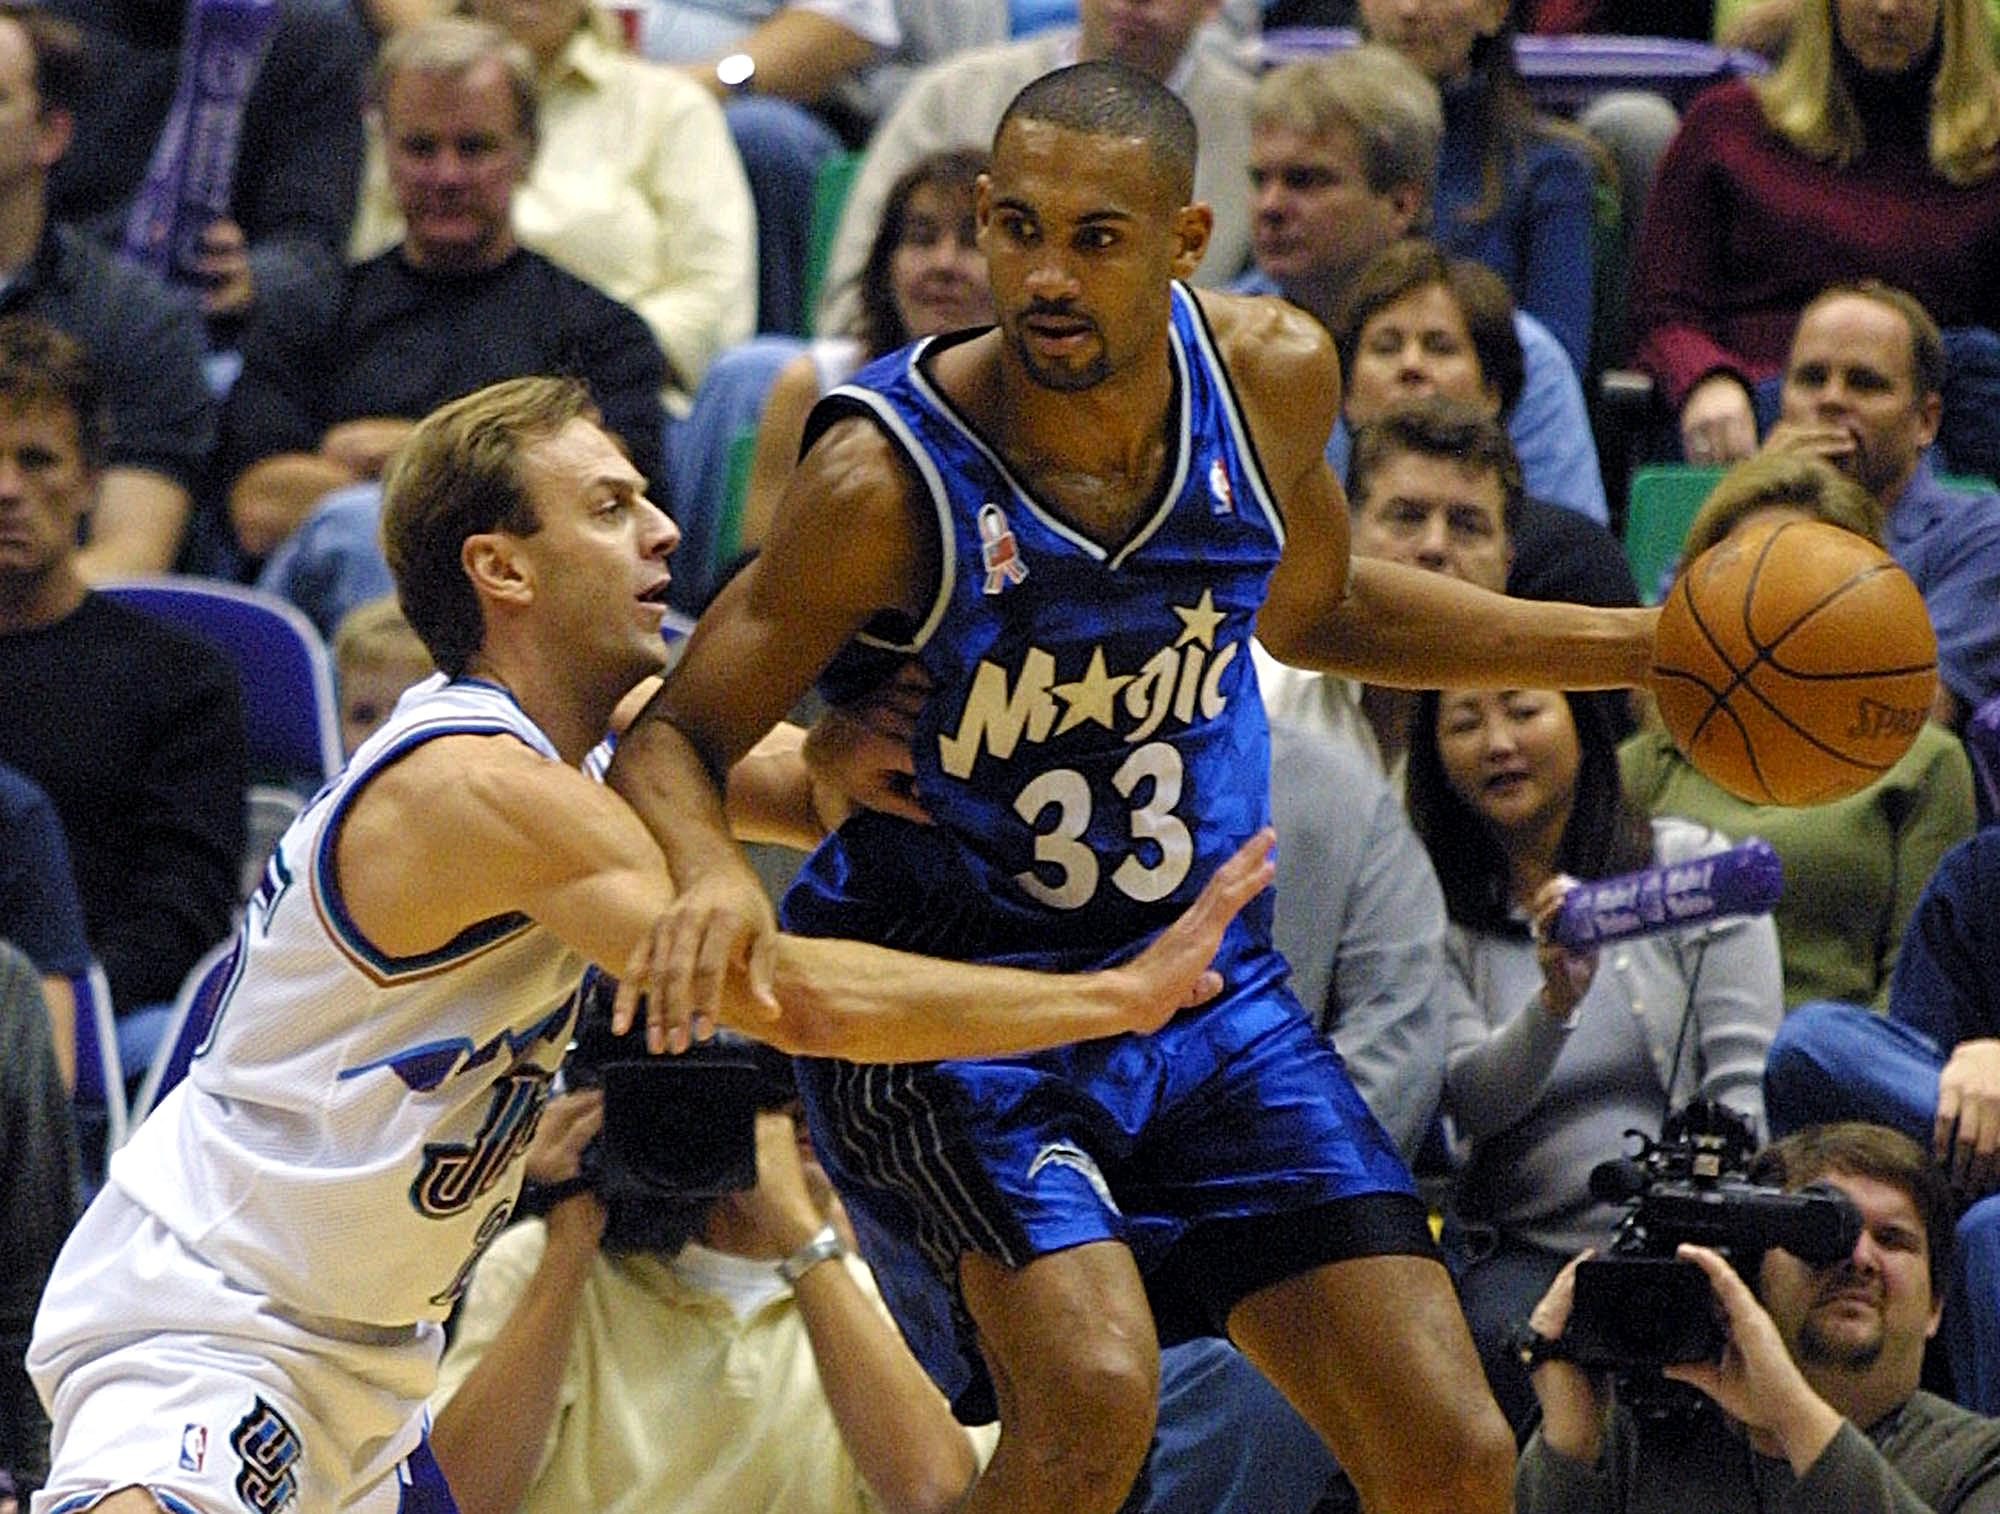 Grant Hill tries to get away from a defender.